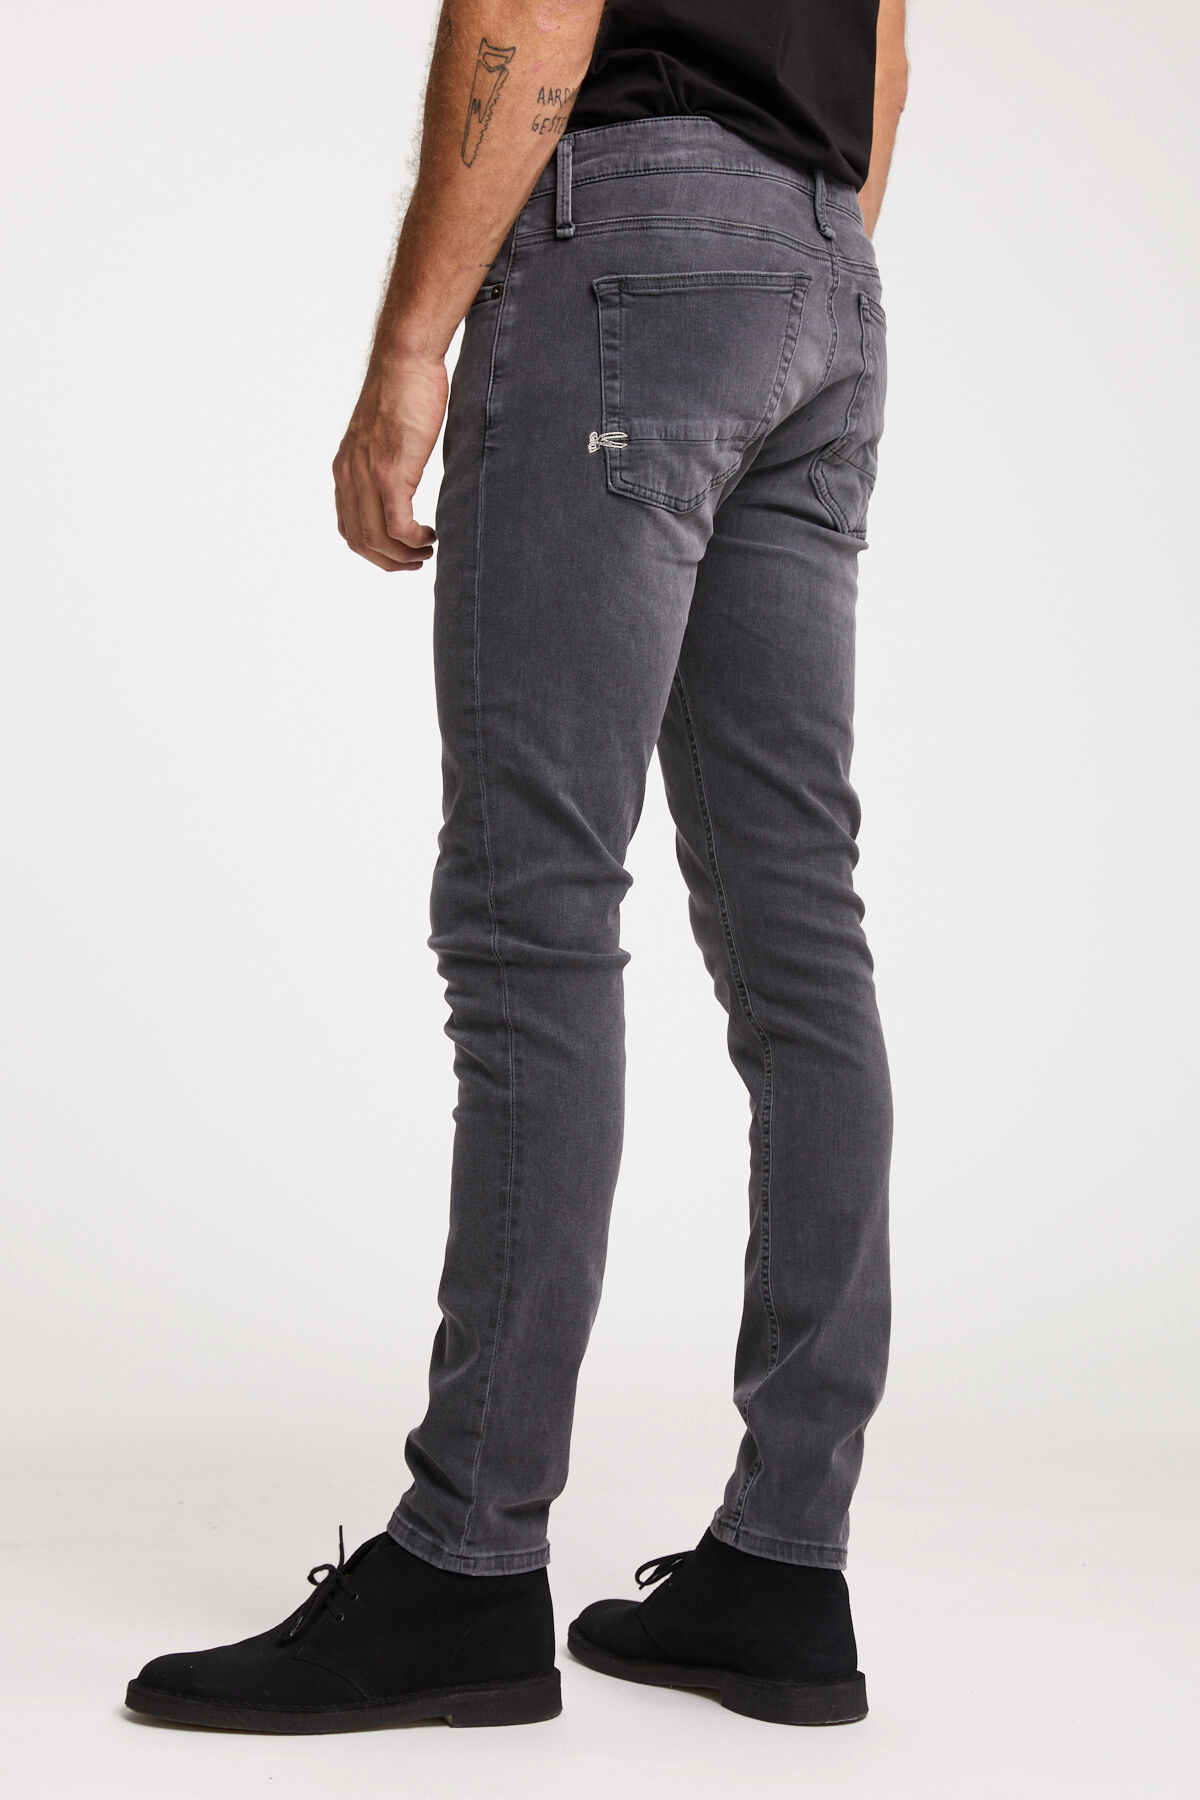 BOLT Mid-Grey, Soft worn Denim - Skinny Fit